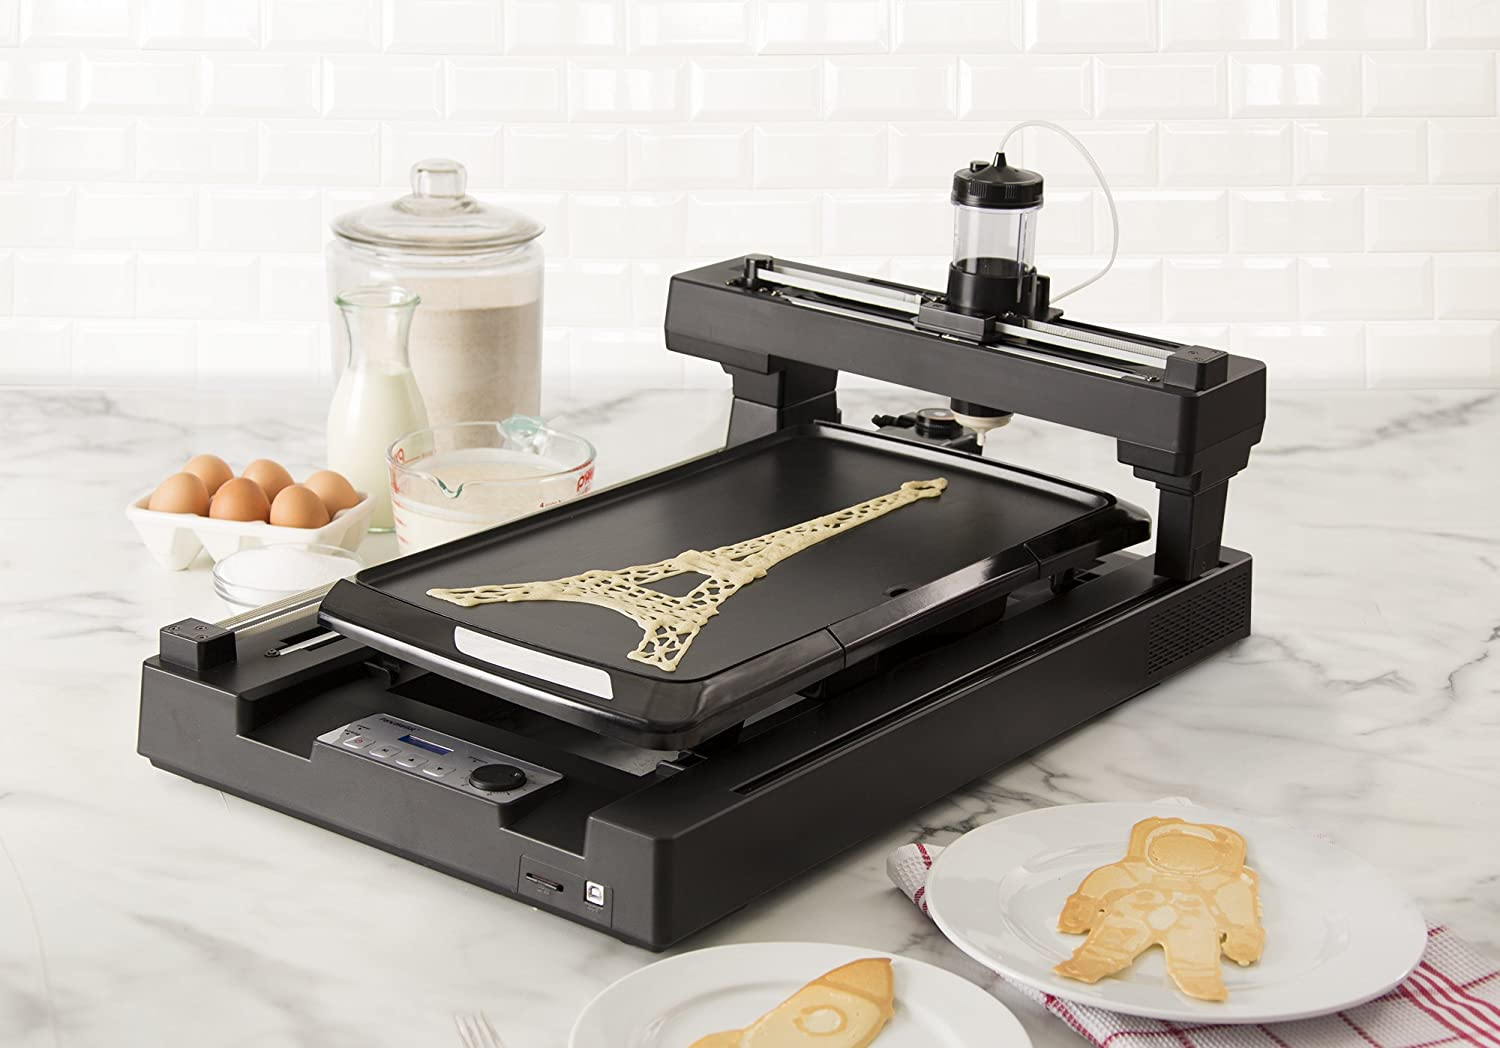 This is AMAZING - a pancake bot 3D food printer!!!